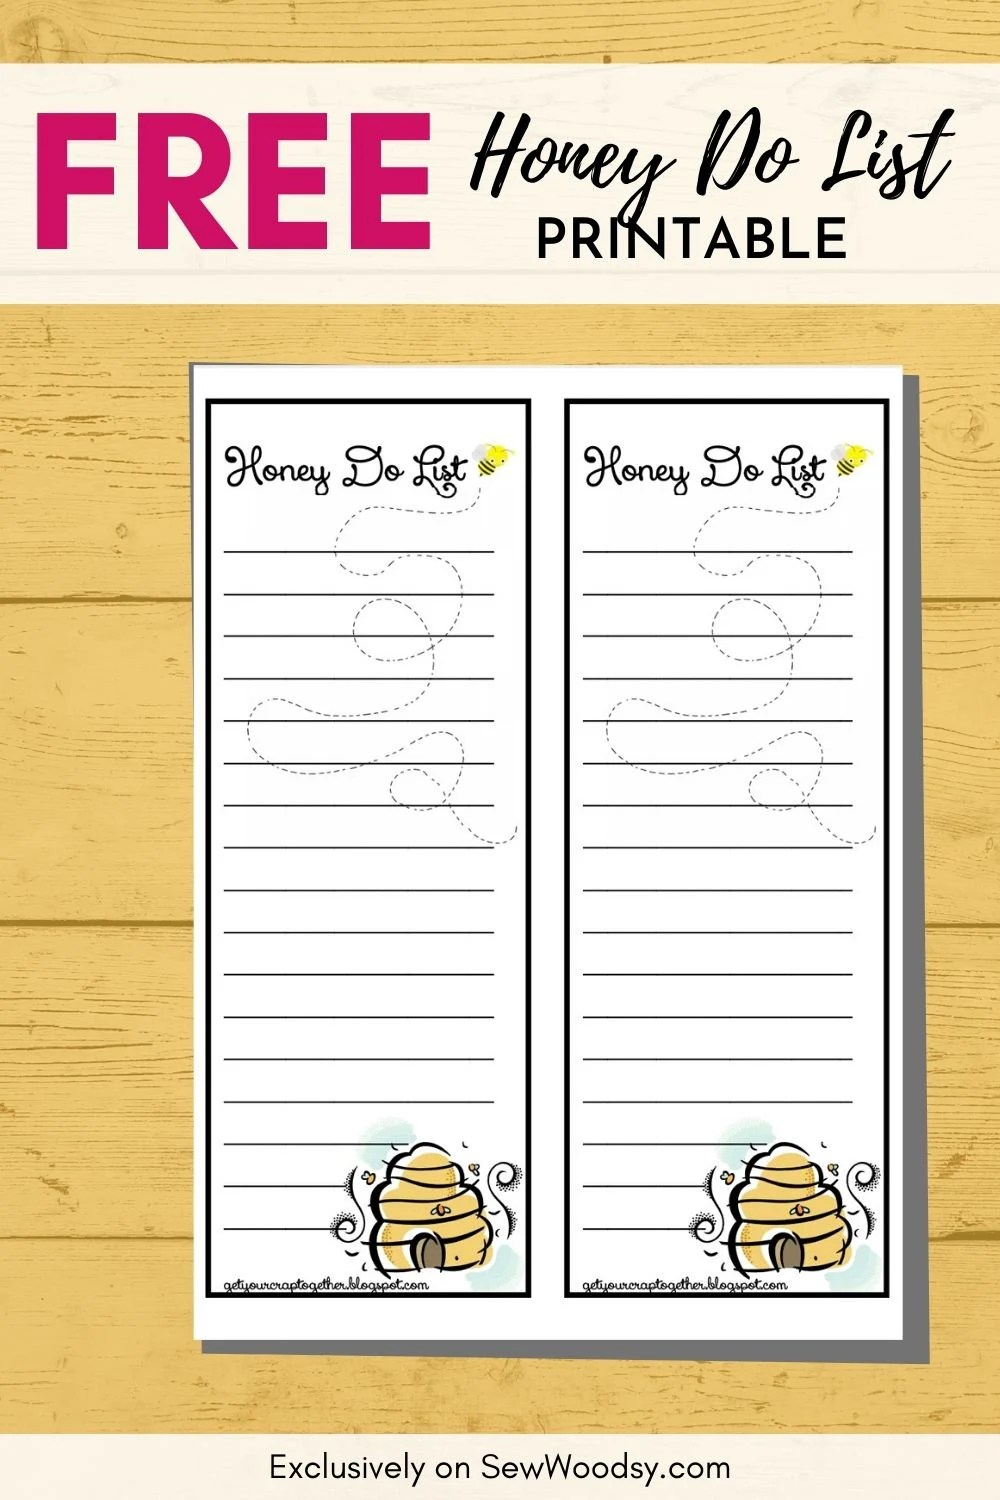 Image of the Free Printable Honey Do List with text.